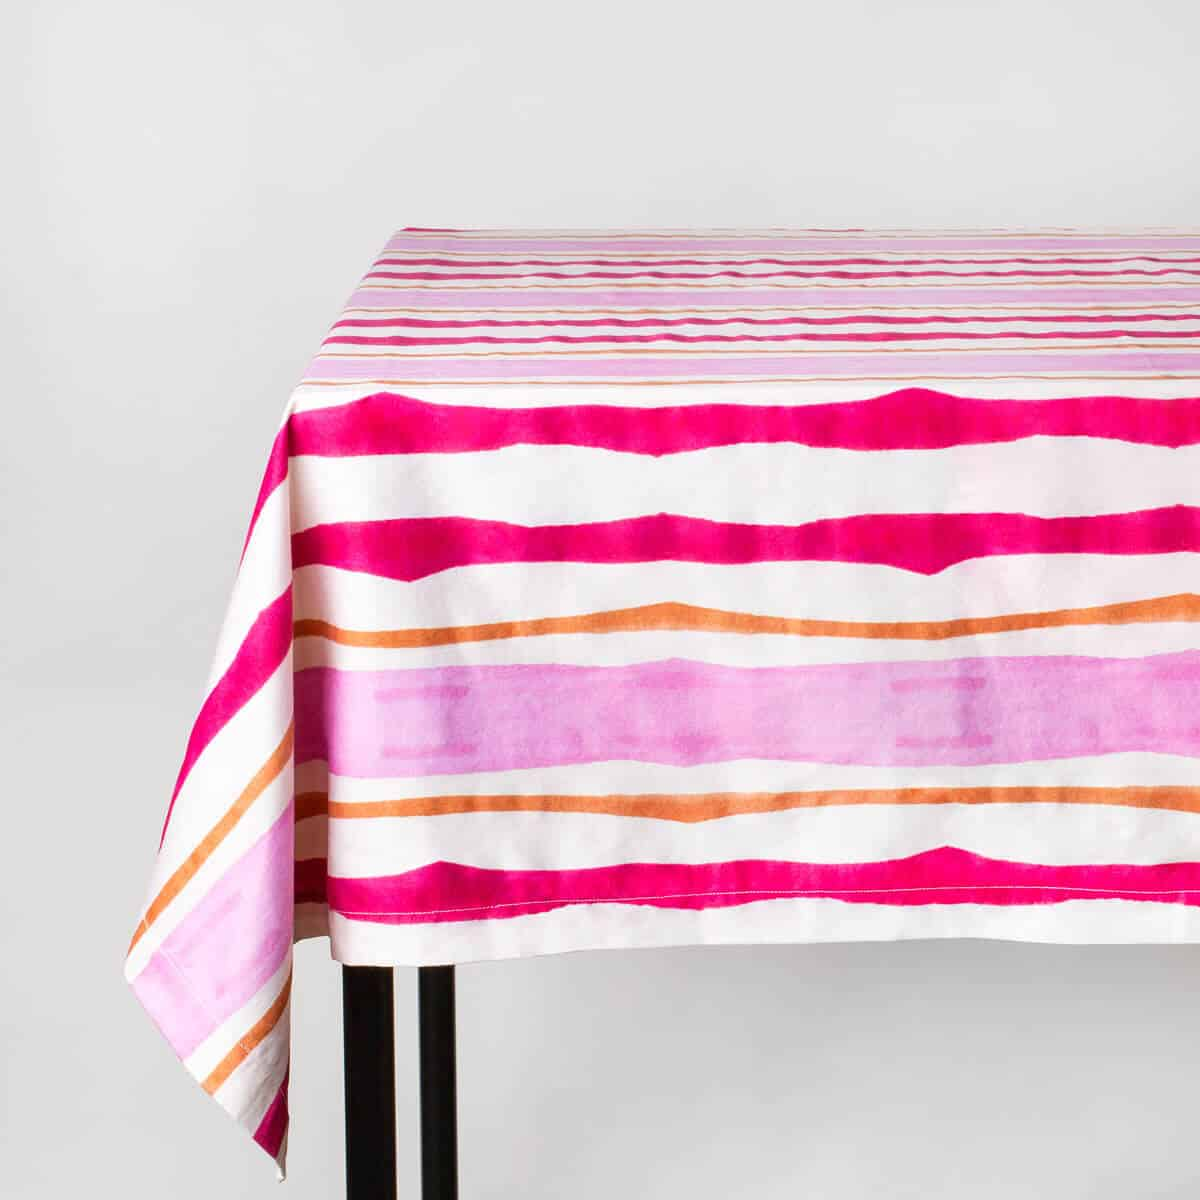 Luxury organic pink and orange mirrored watercolor stripe tablecloth on table